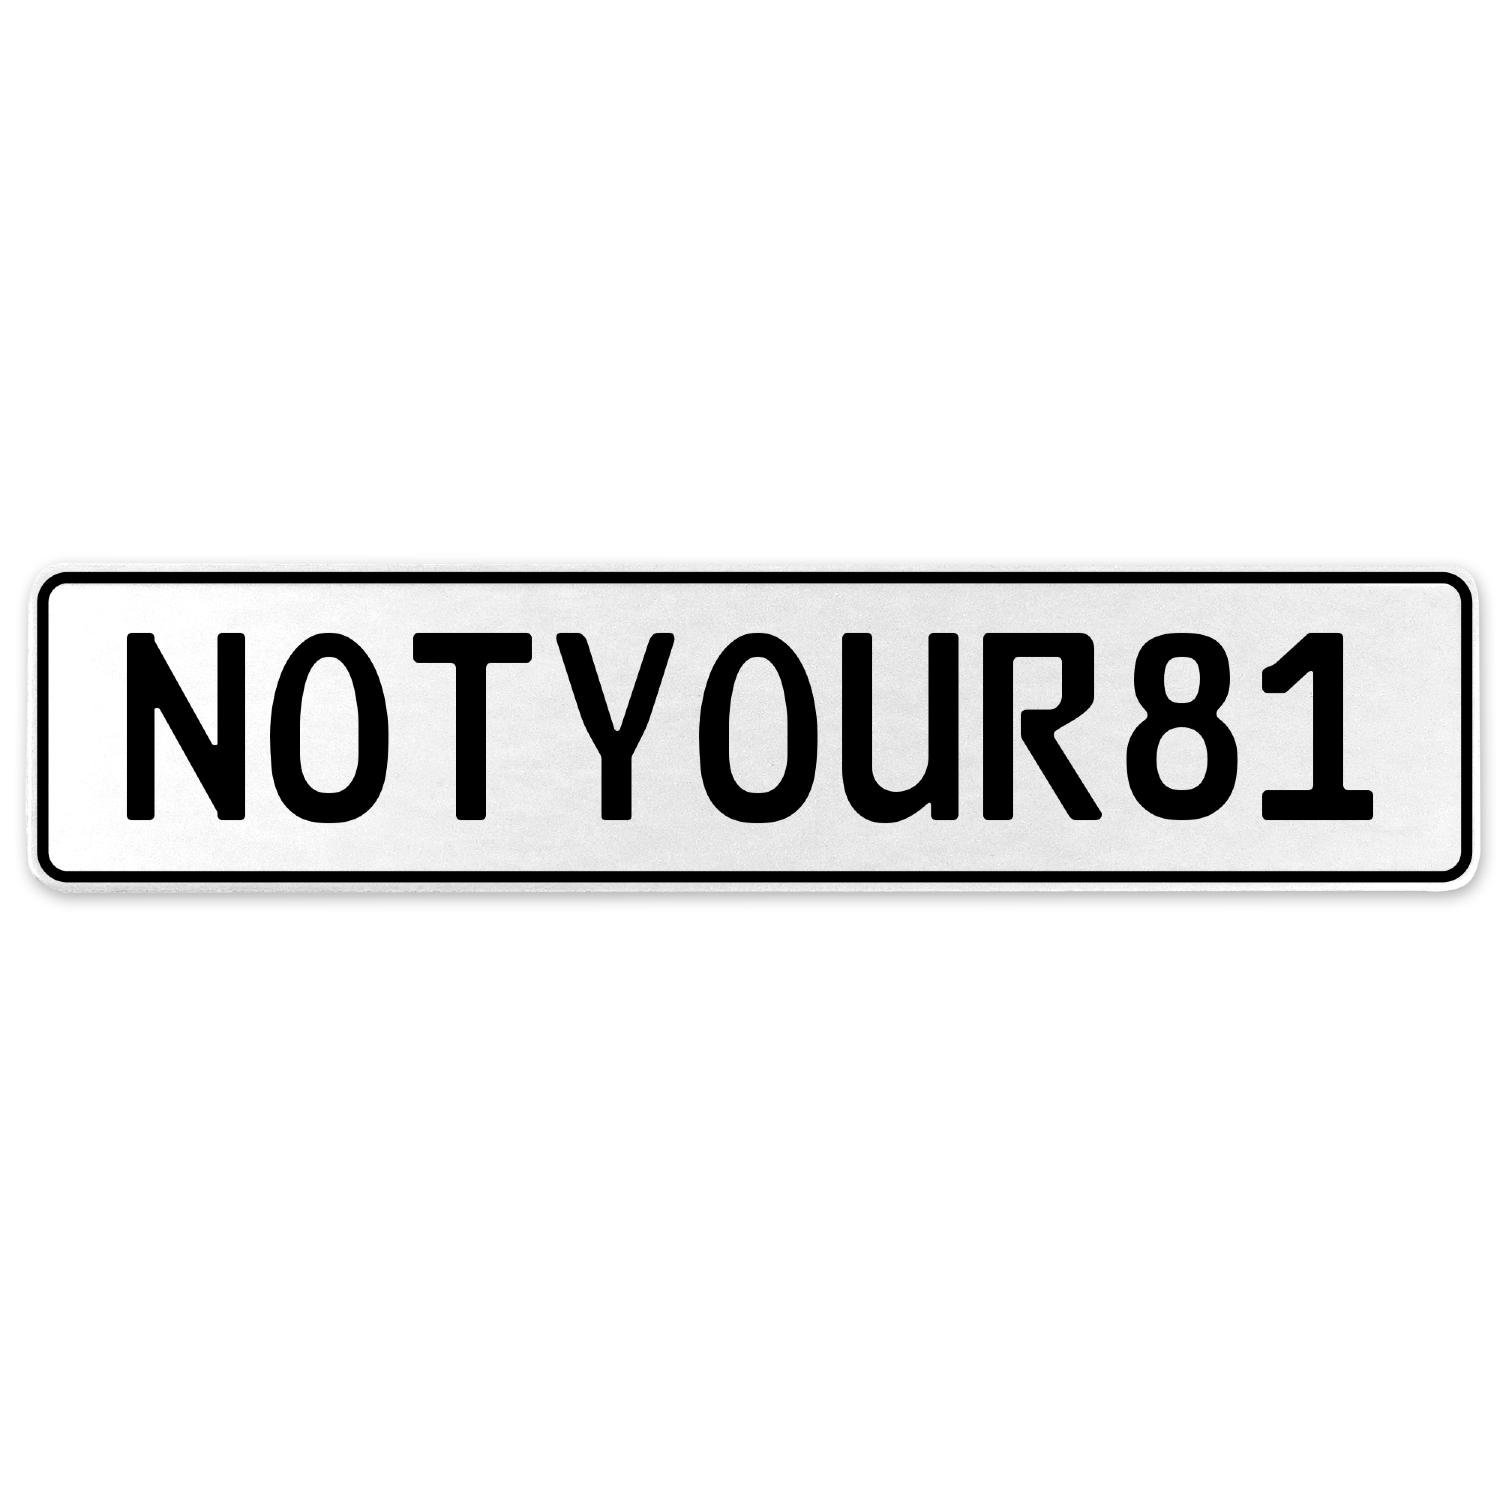 Vintage Parts 555470 NOTYOUR81 White Stamped Aluminum European License Plate